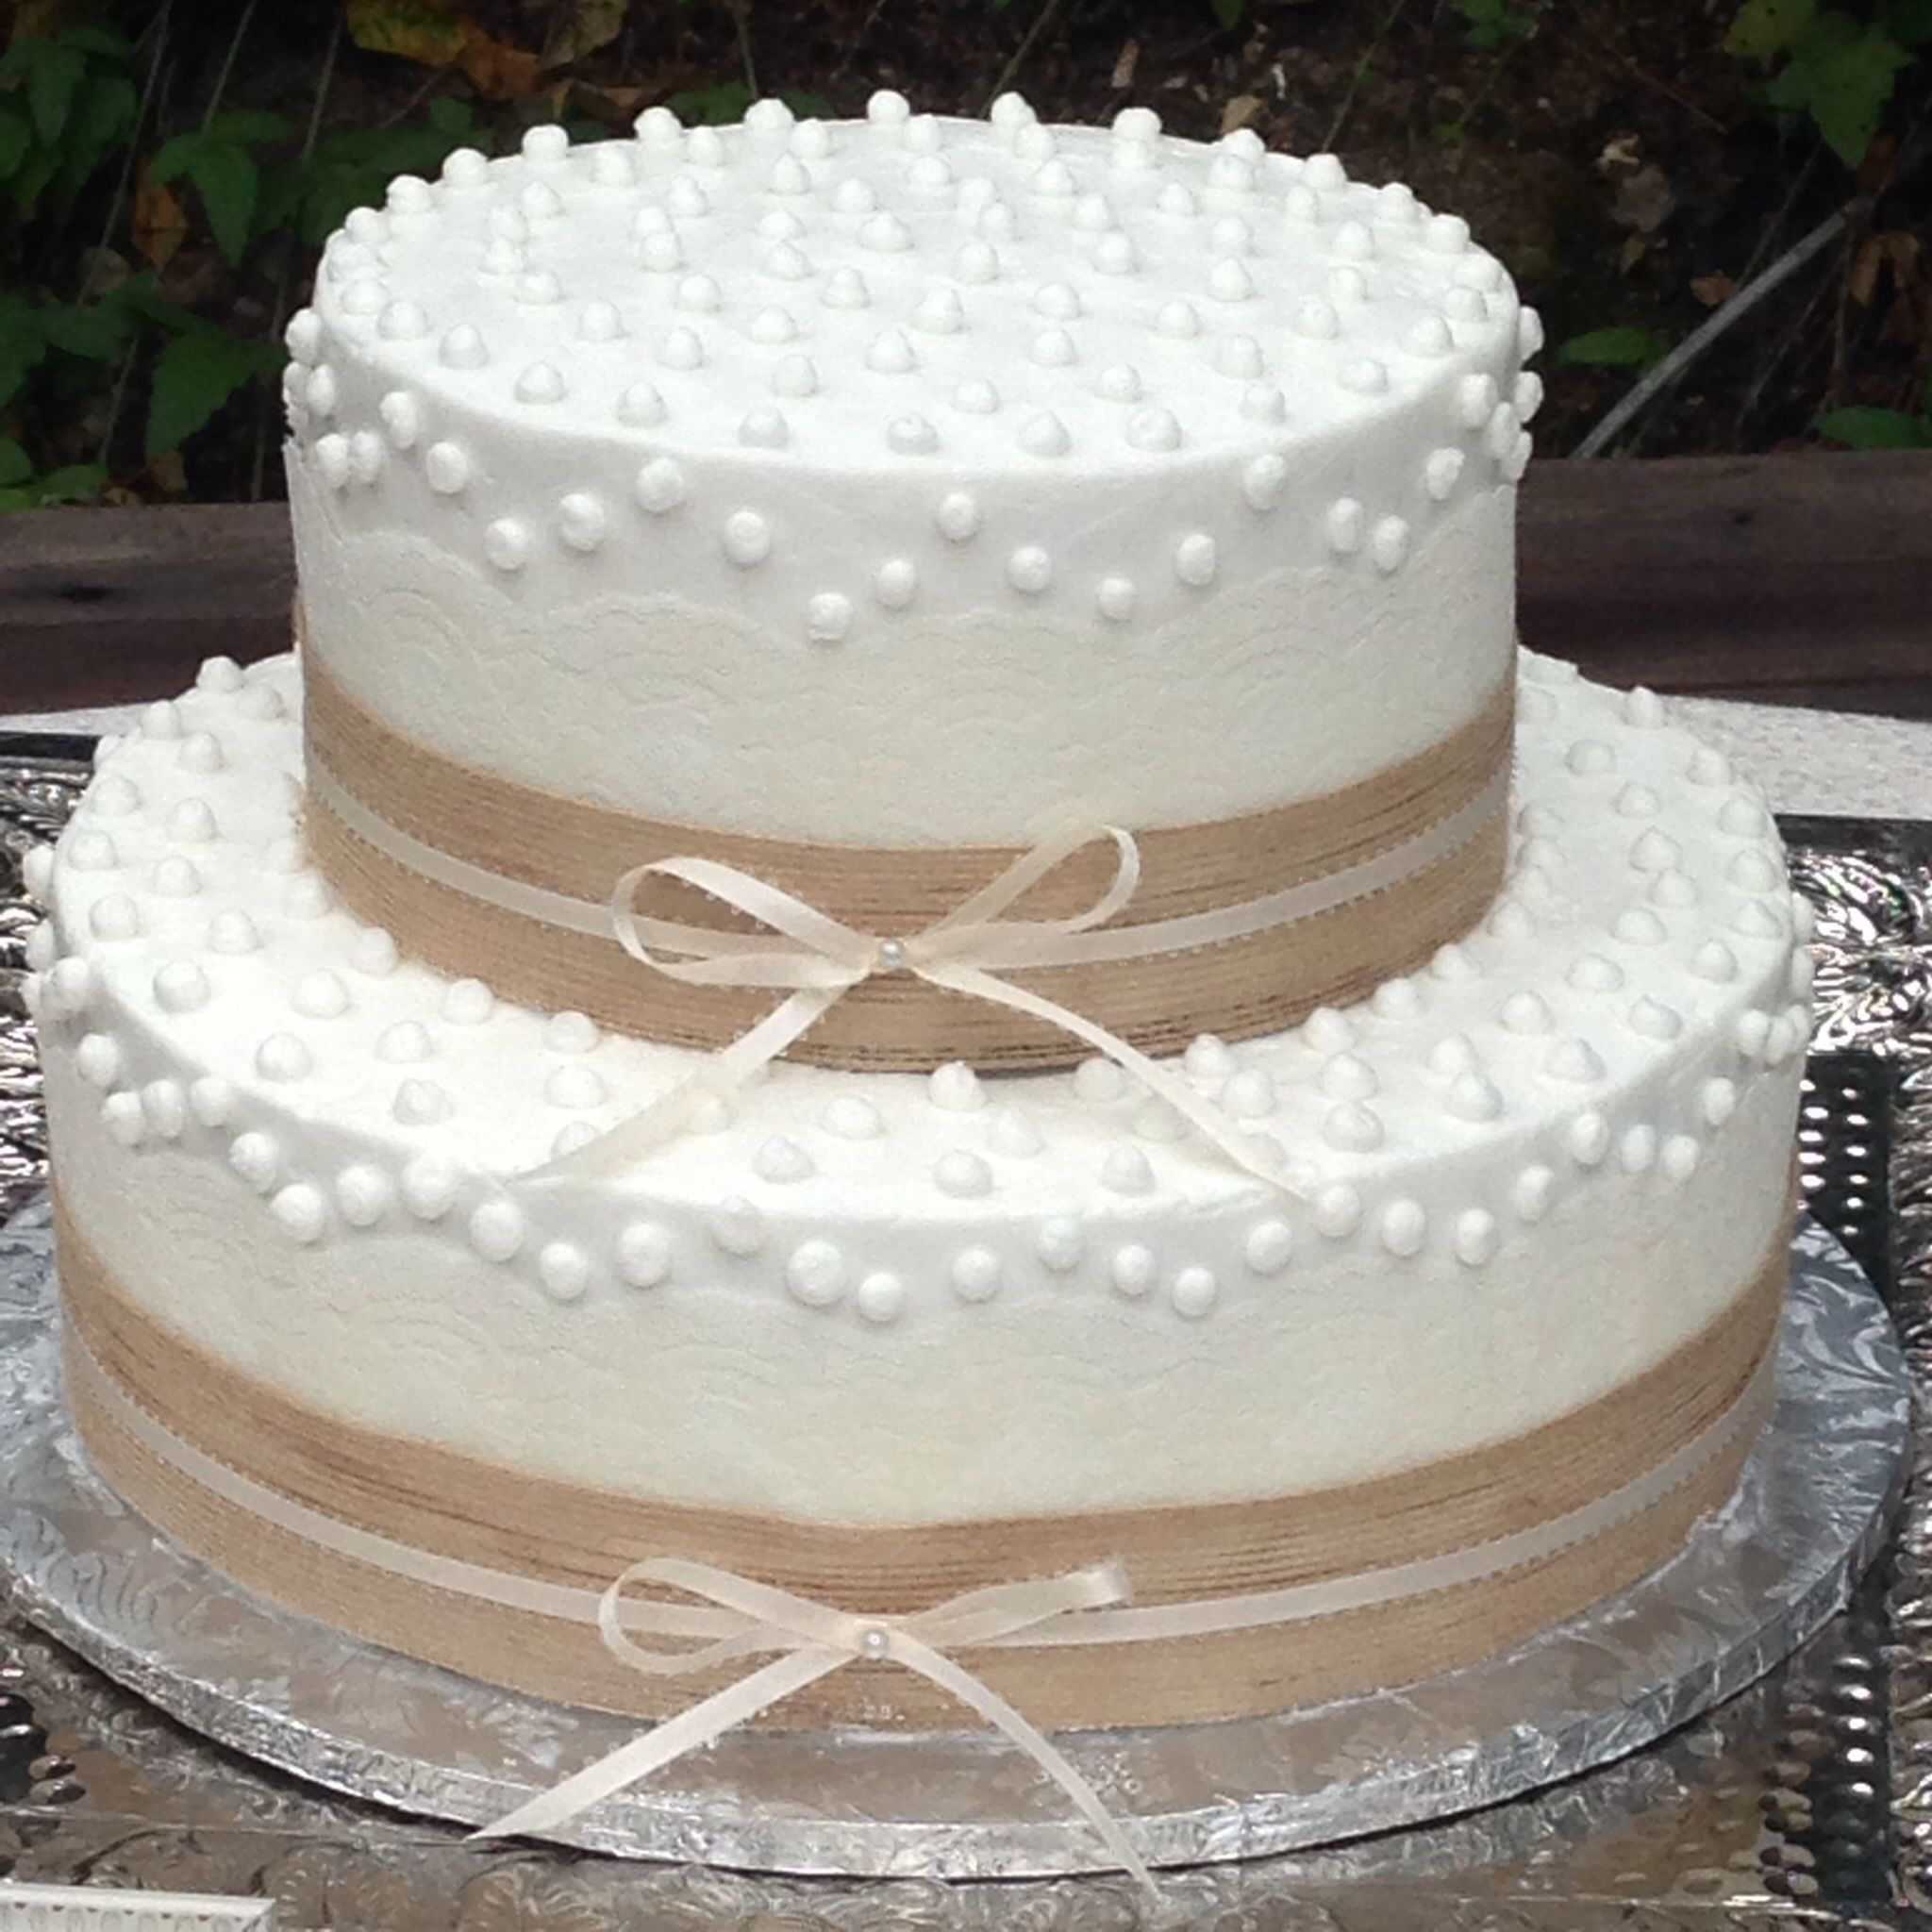 Rustic buttercream frosted wedding cake with lace and